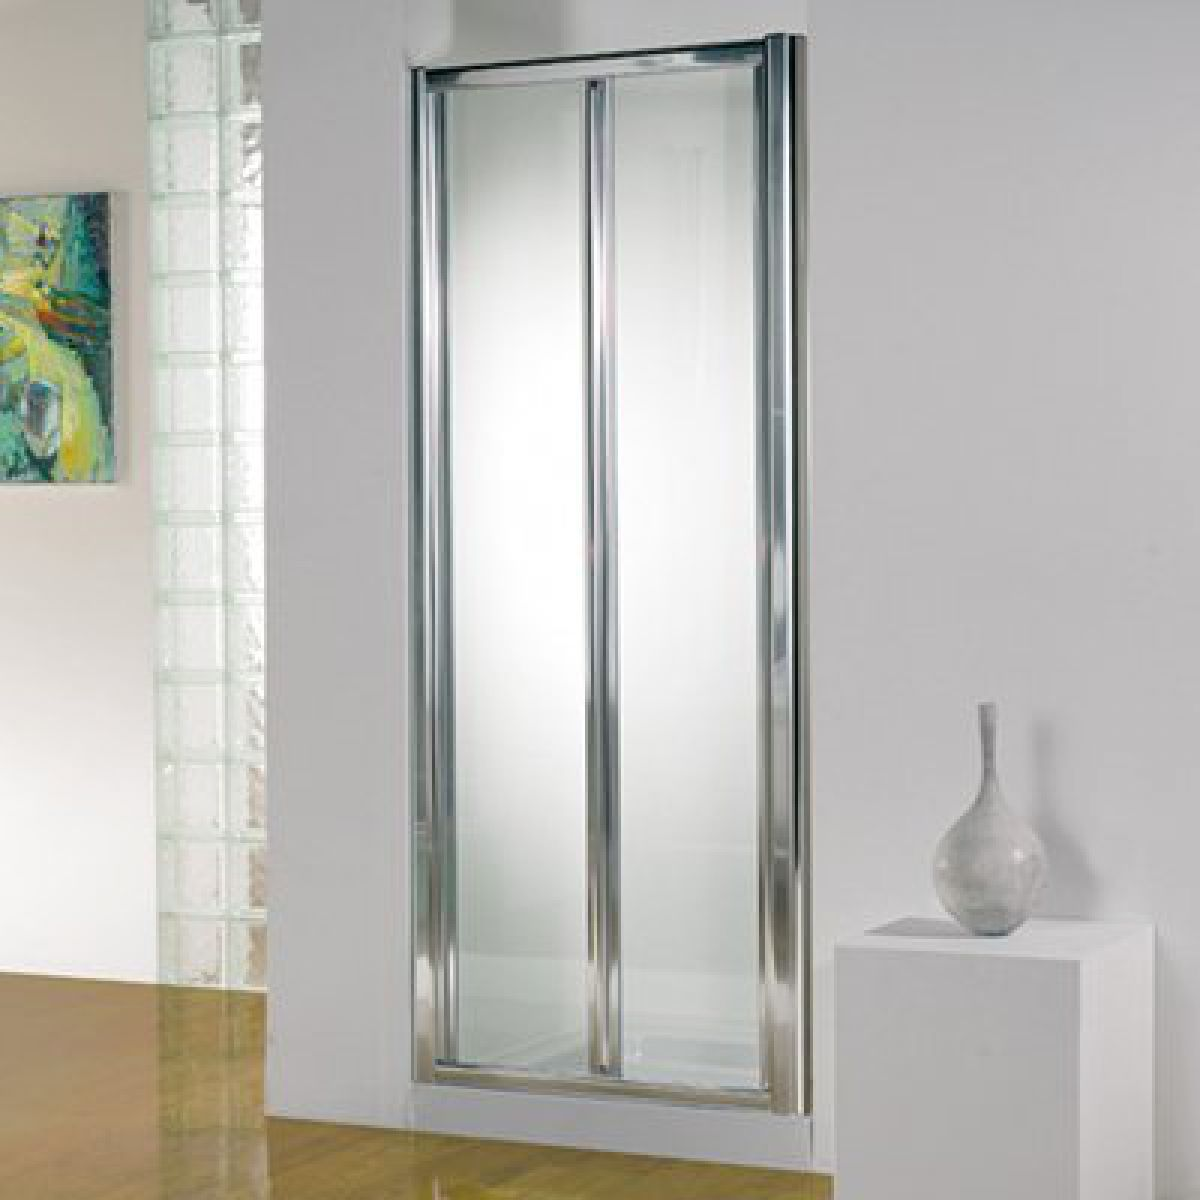 Kudos Original Bi Fold Shower Door Uk Bathrooms